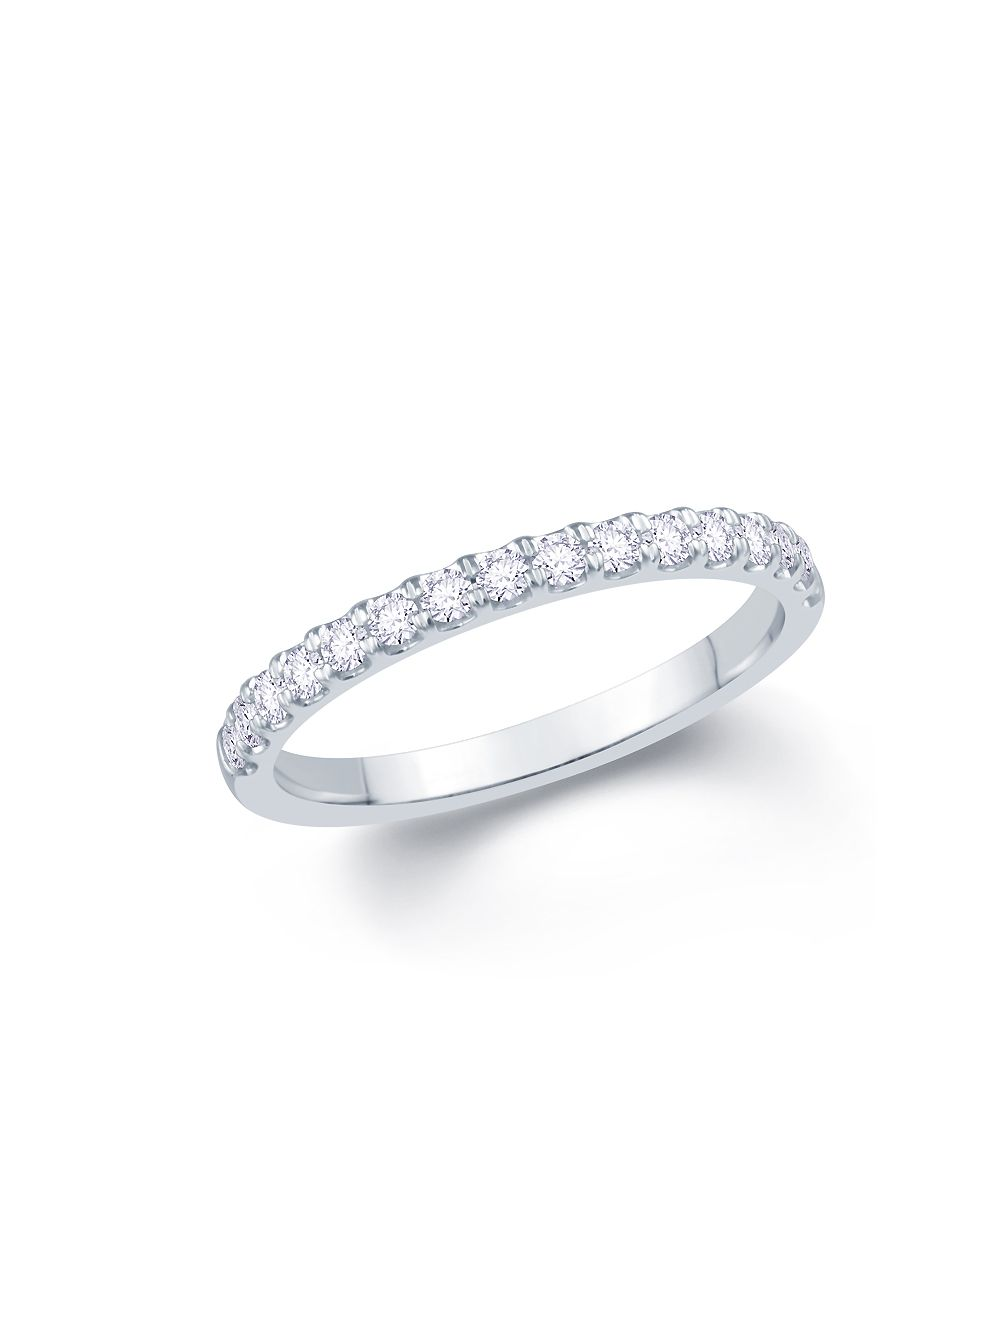 White Gold Wedding Band.18ct White Gold Round Brilliant Split Claw Diamond Ladies Wedding Band